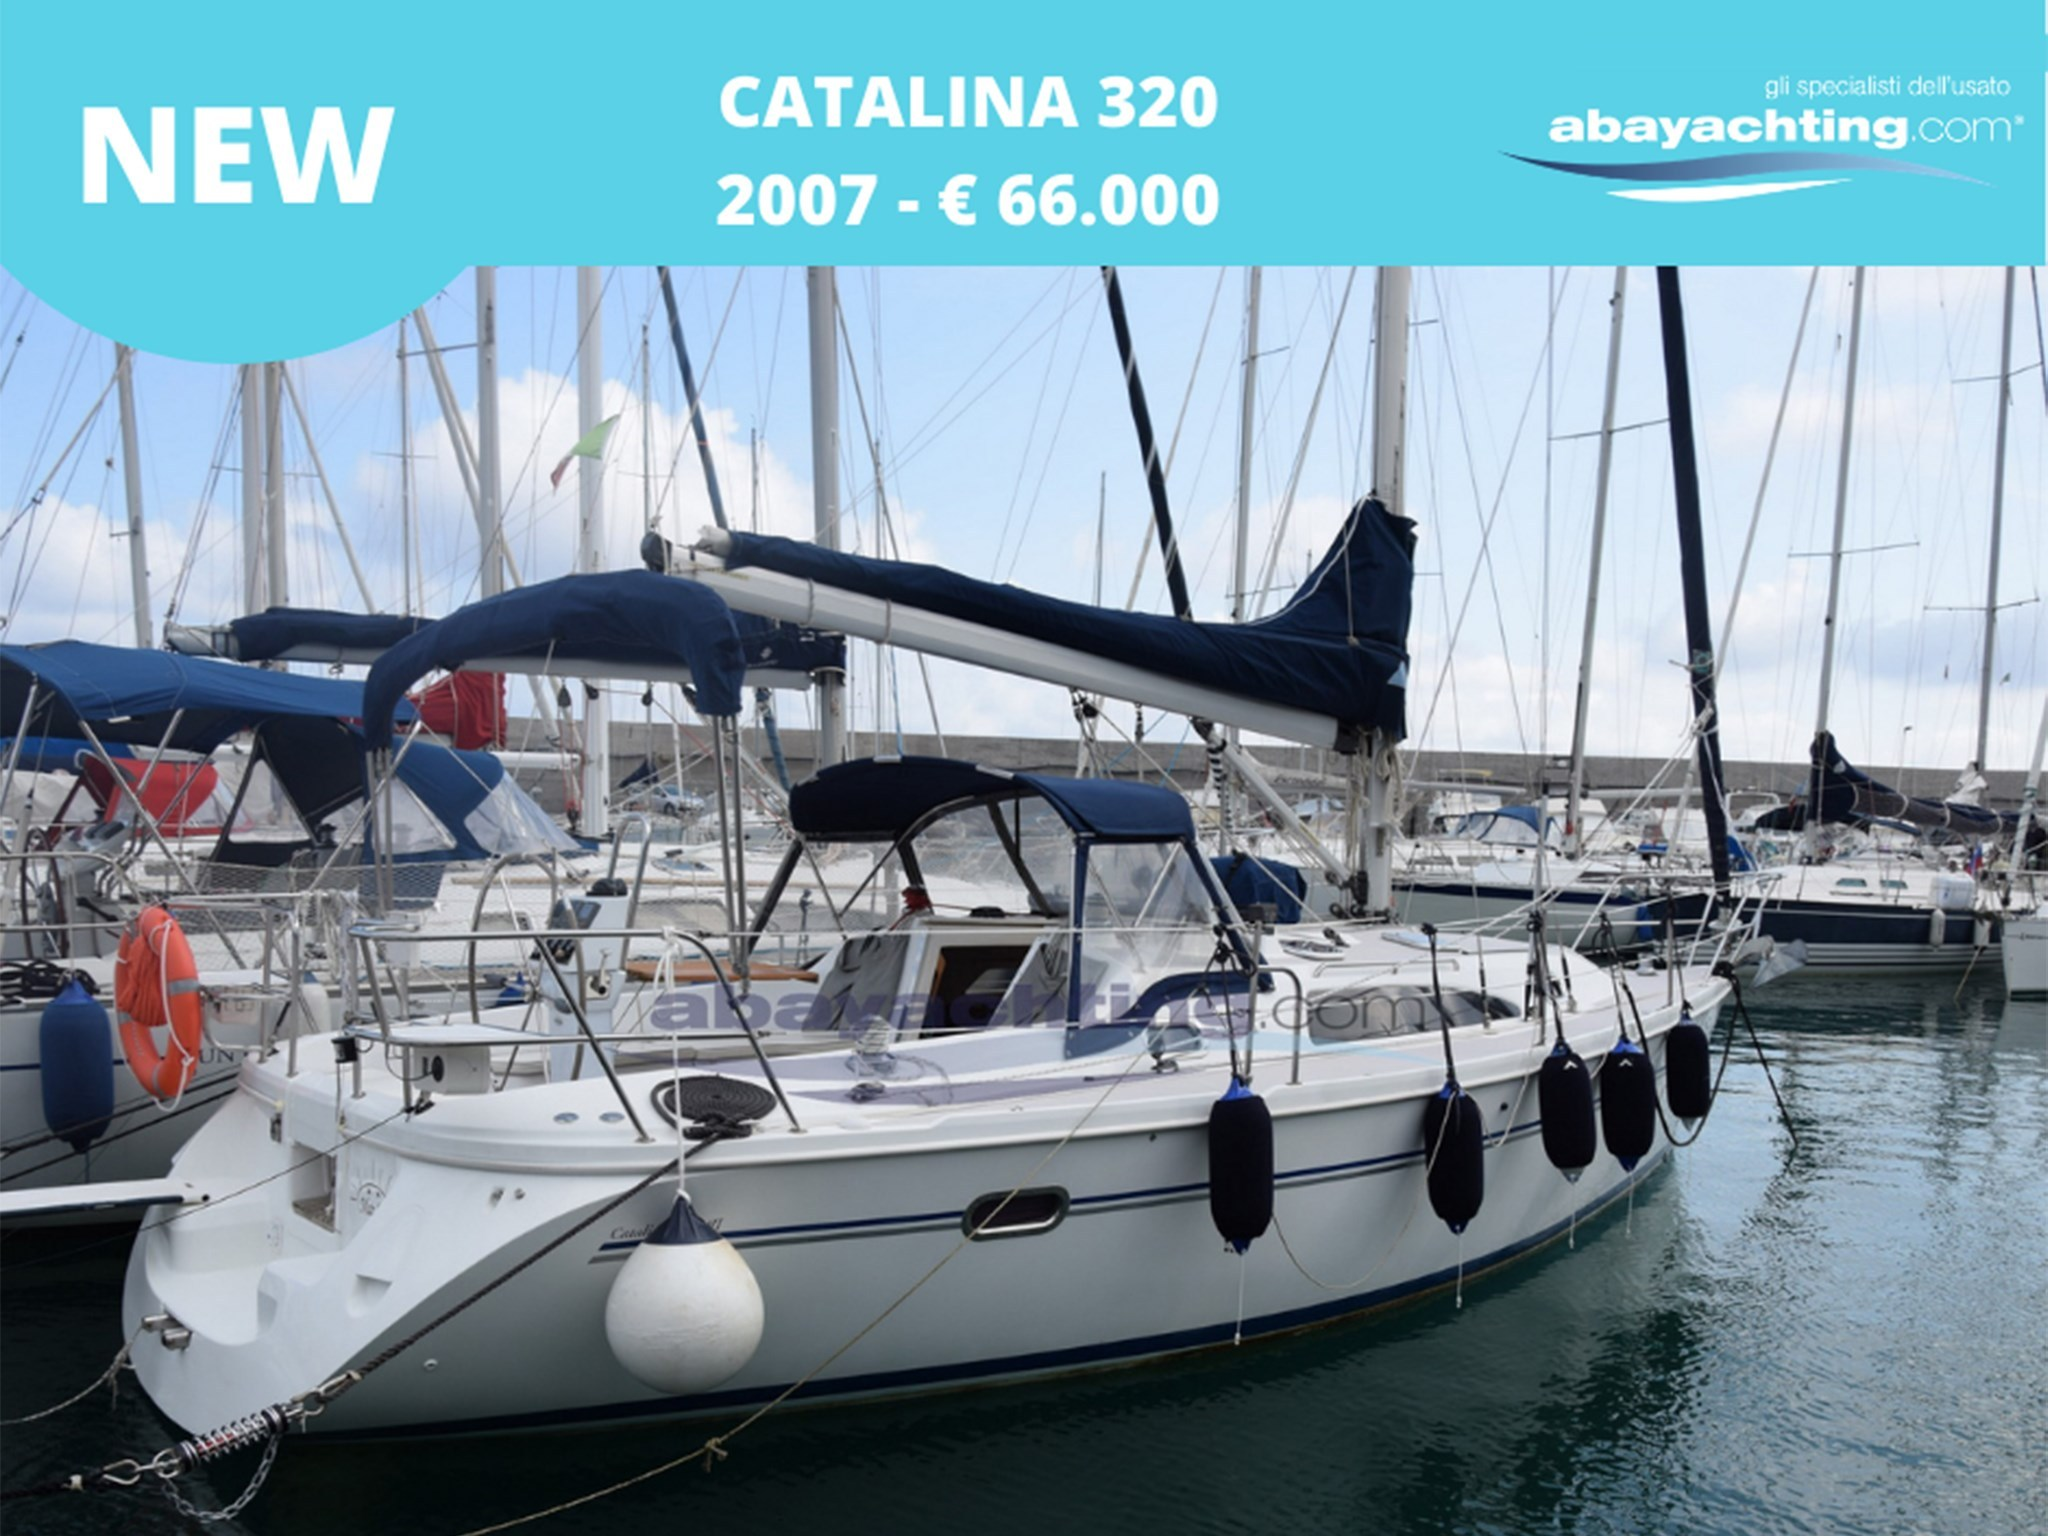 New arrival Catalina 320